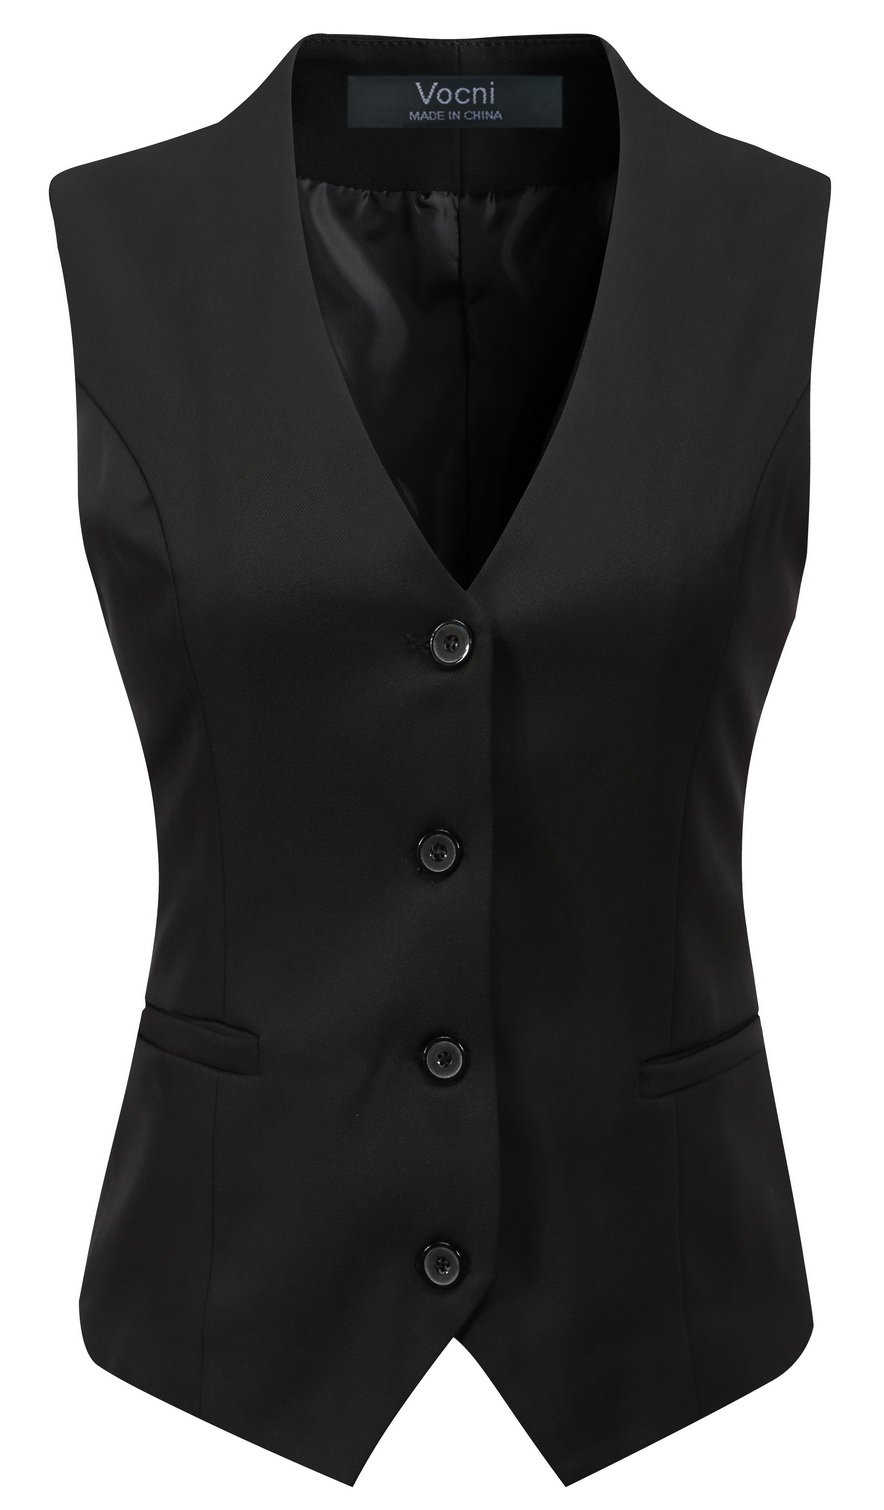 Vocni Women's Fully Lined 4 Button V-Neck Economy Dressy Suit Vest Waistcoat ,Black,US M+ ,(Asian 4XL)